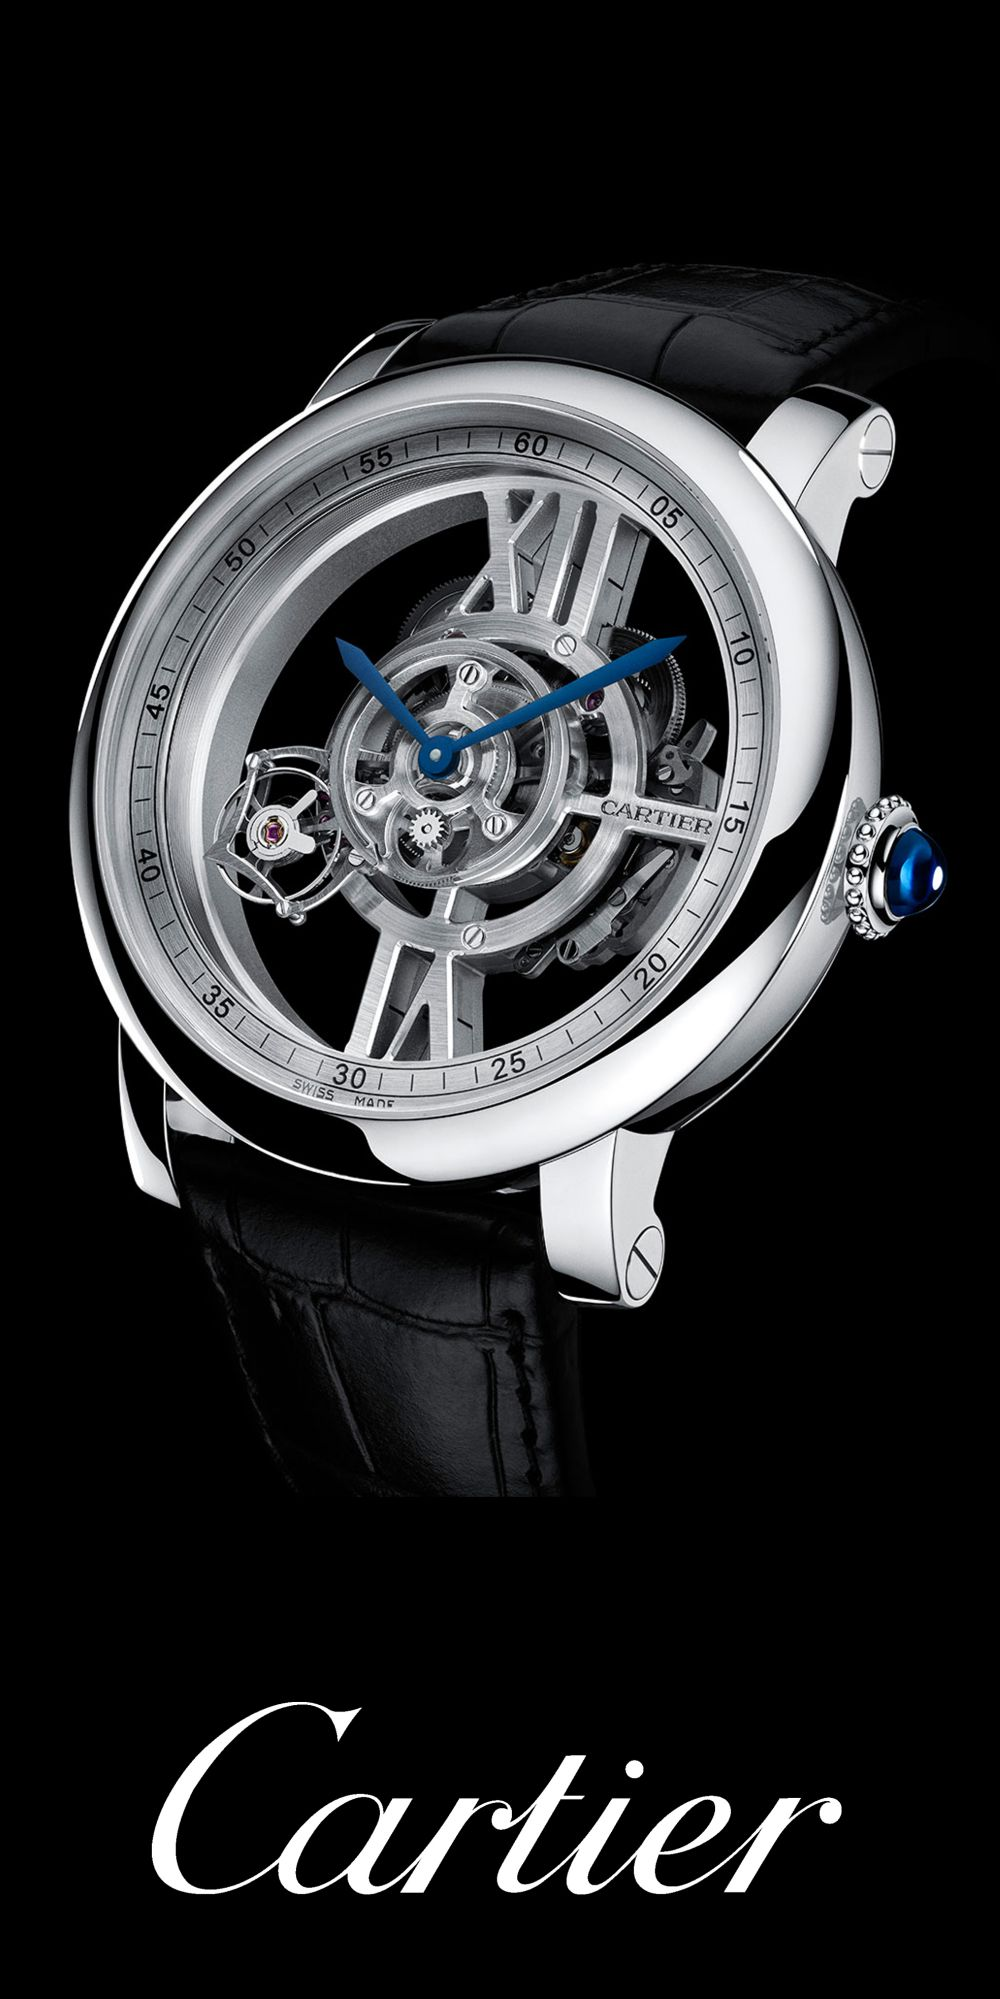 Cartier-Rotonde-de-Cartier-Astrotourbillon-Skeleton-Watch-Calibre-9461-MC.jpg